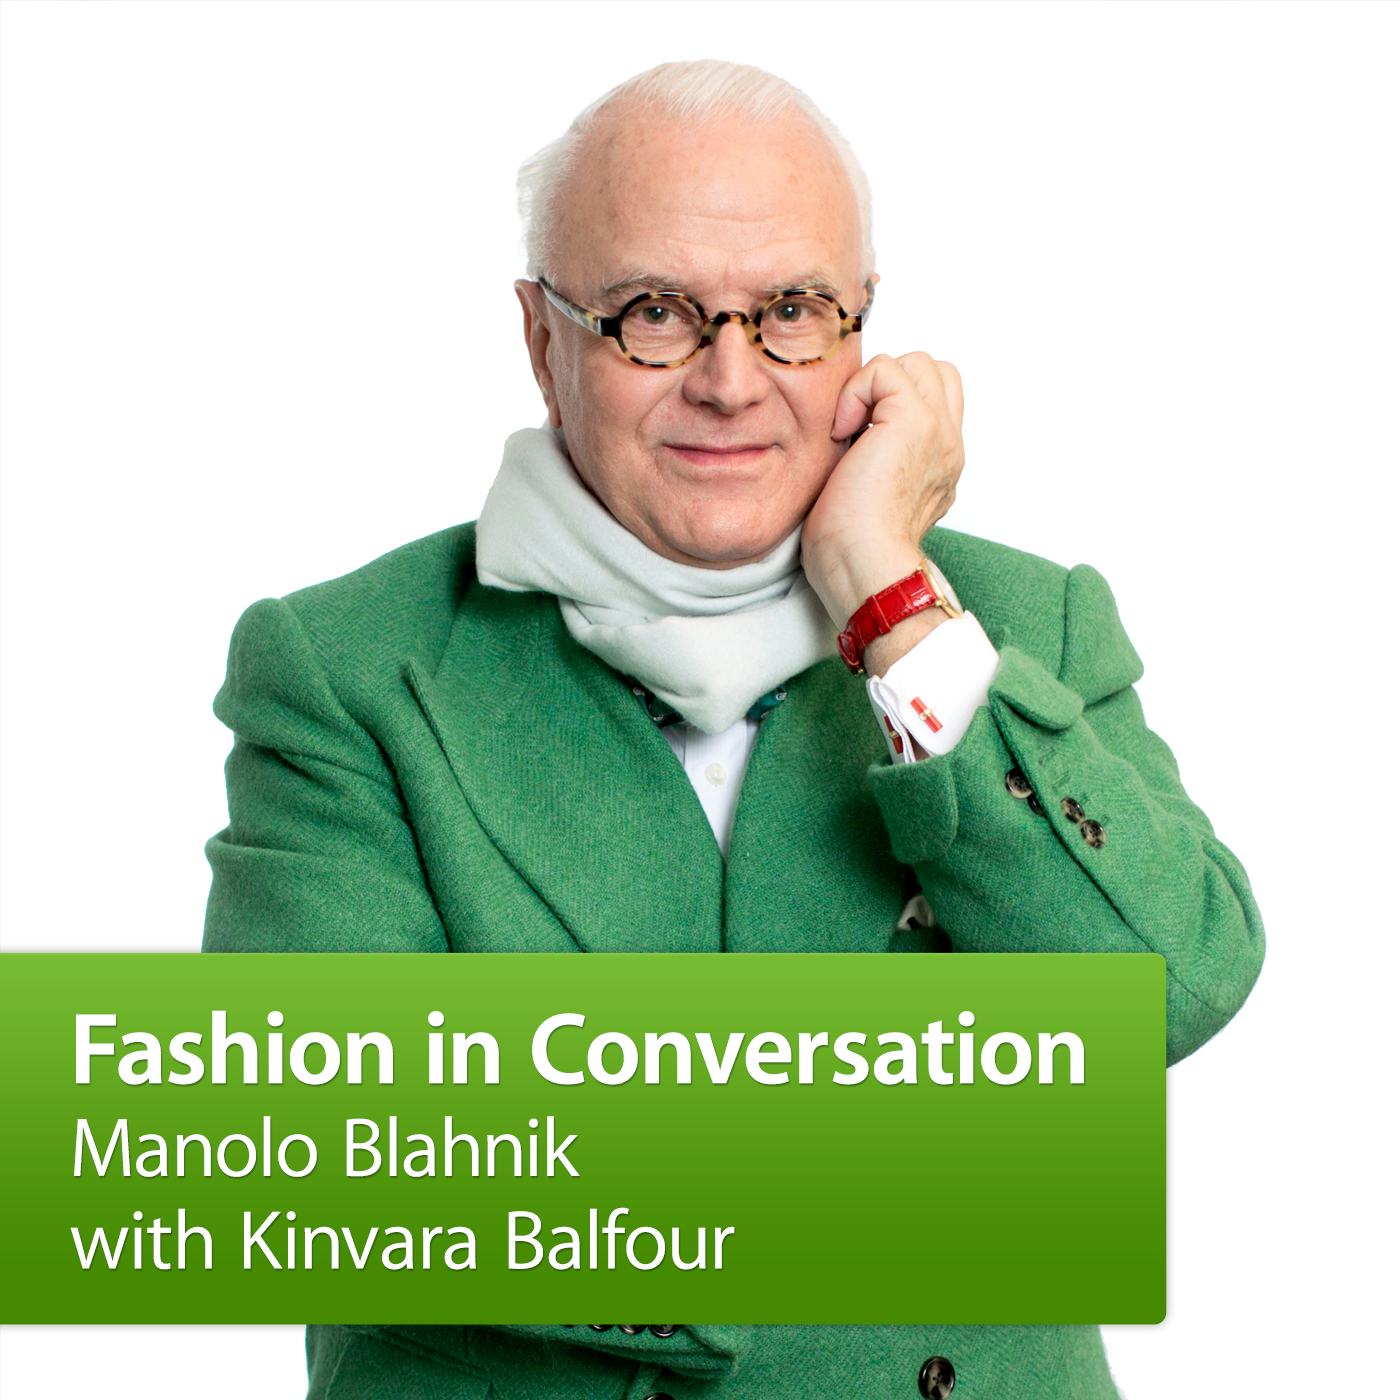 Manolo Blahnik with Kinvara Balfour